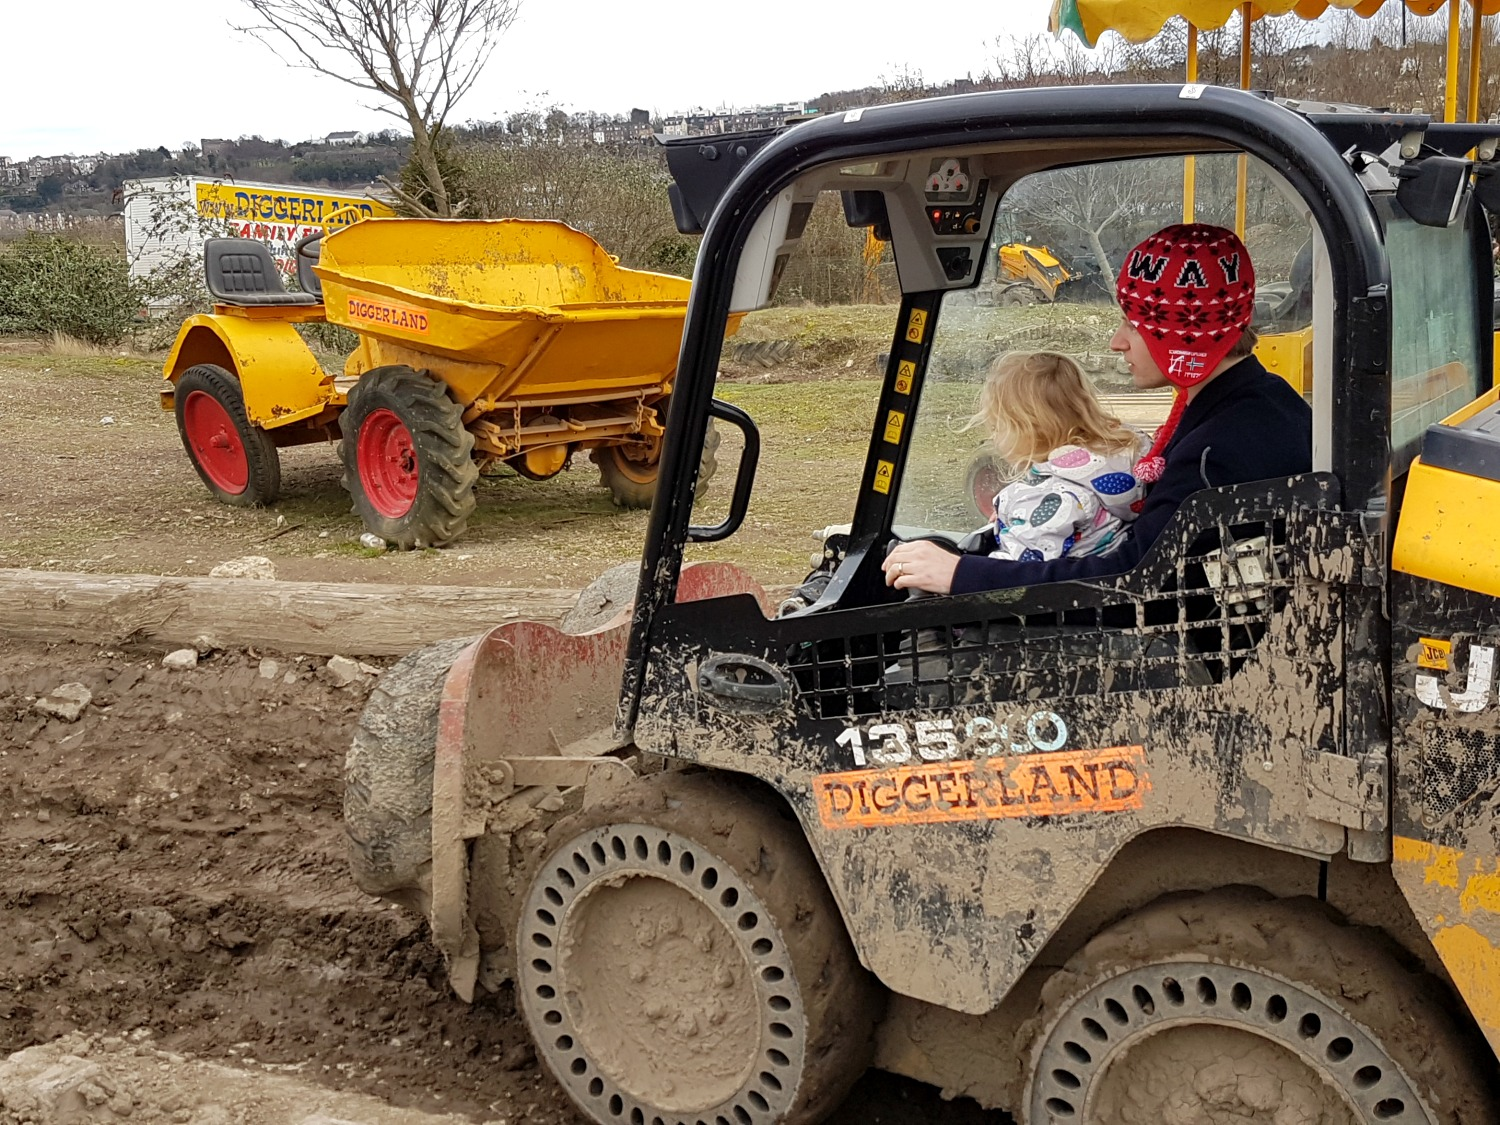 My daughter getting behind the wheel at Diggerland Kent - one of the attractions on this family day out